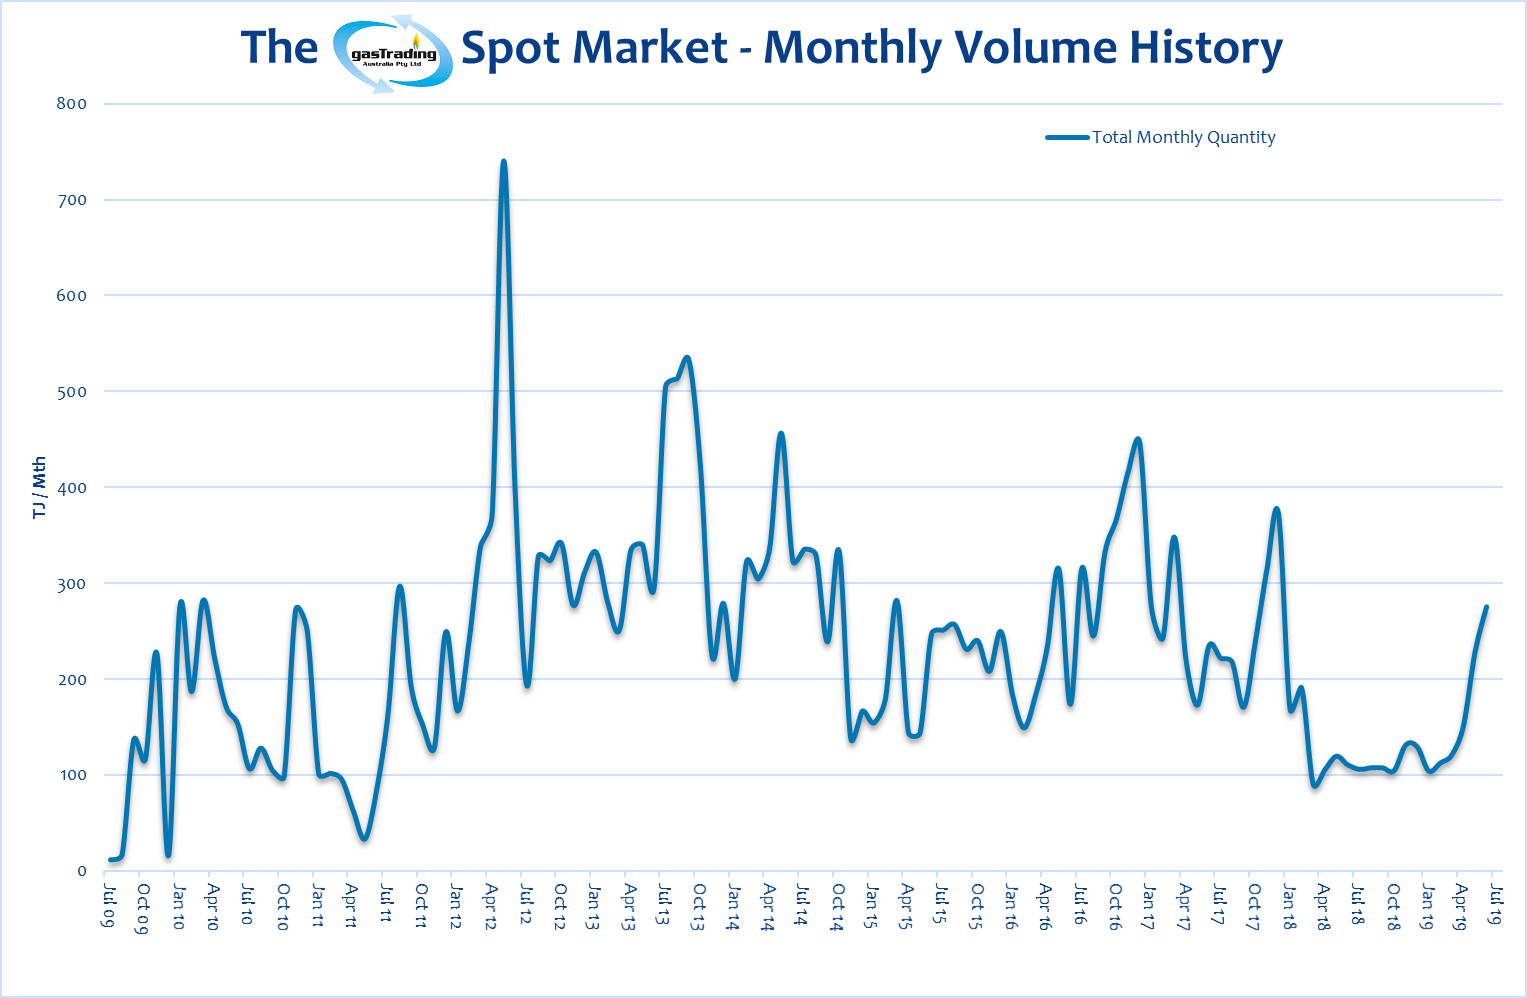 Monthly Volume History